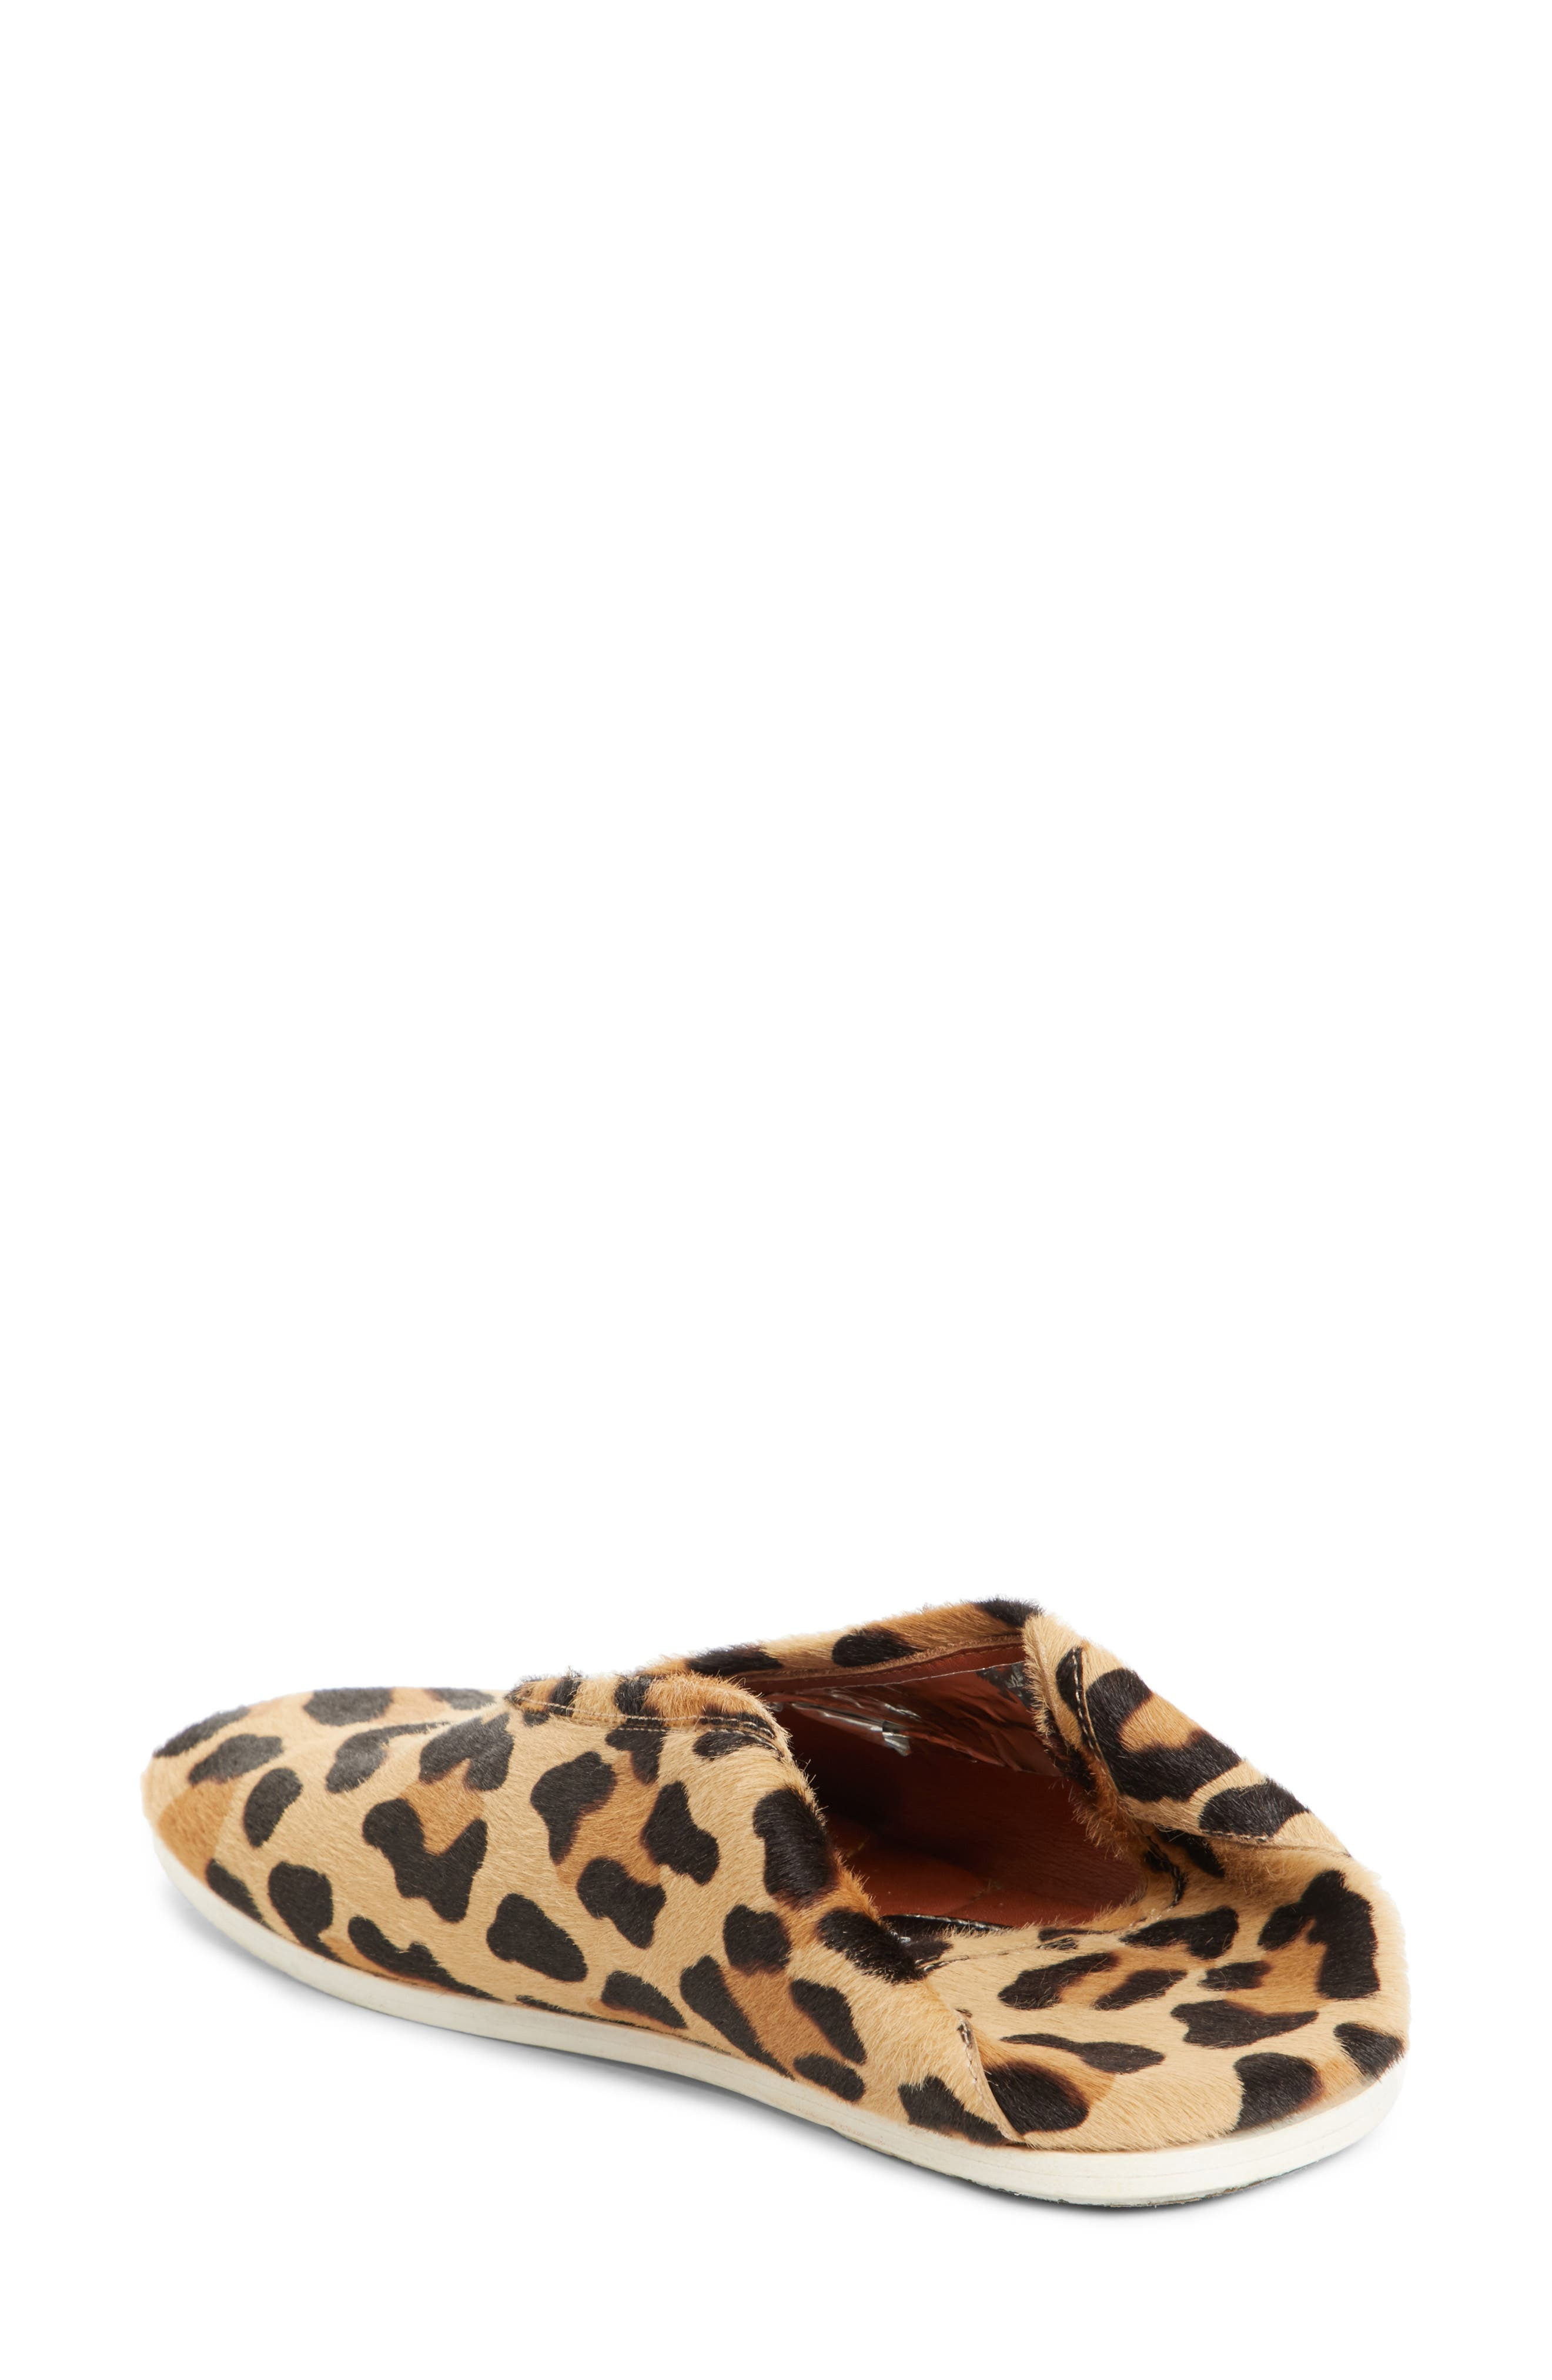 PSWL Genuine Calf Hair Convertible Loafer,                             Alternate thumbnail 3, color,                             Leopard Print